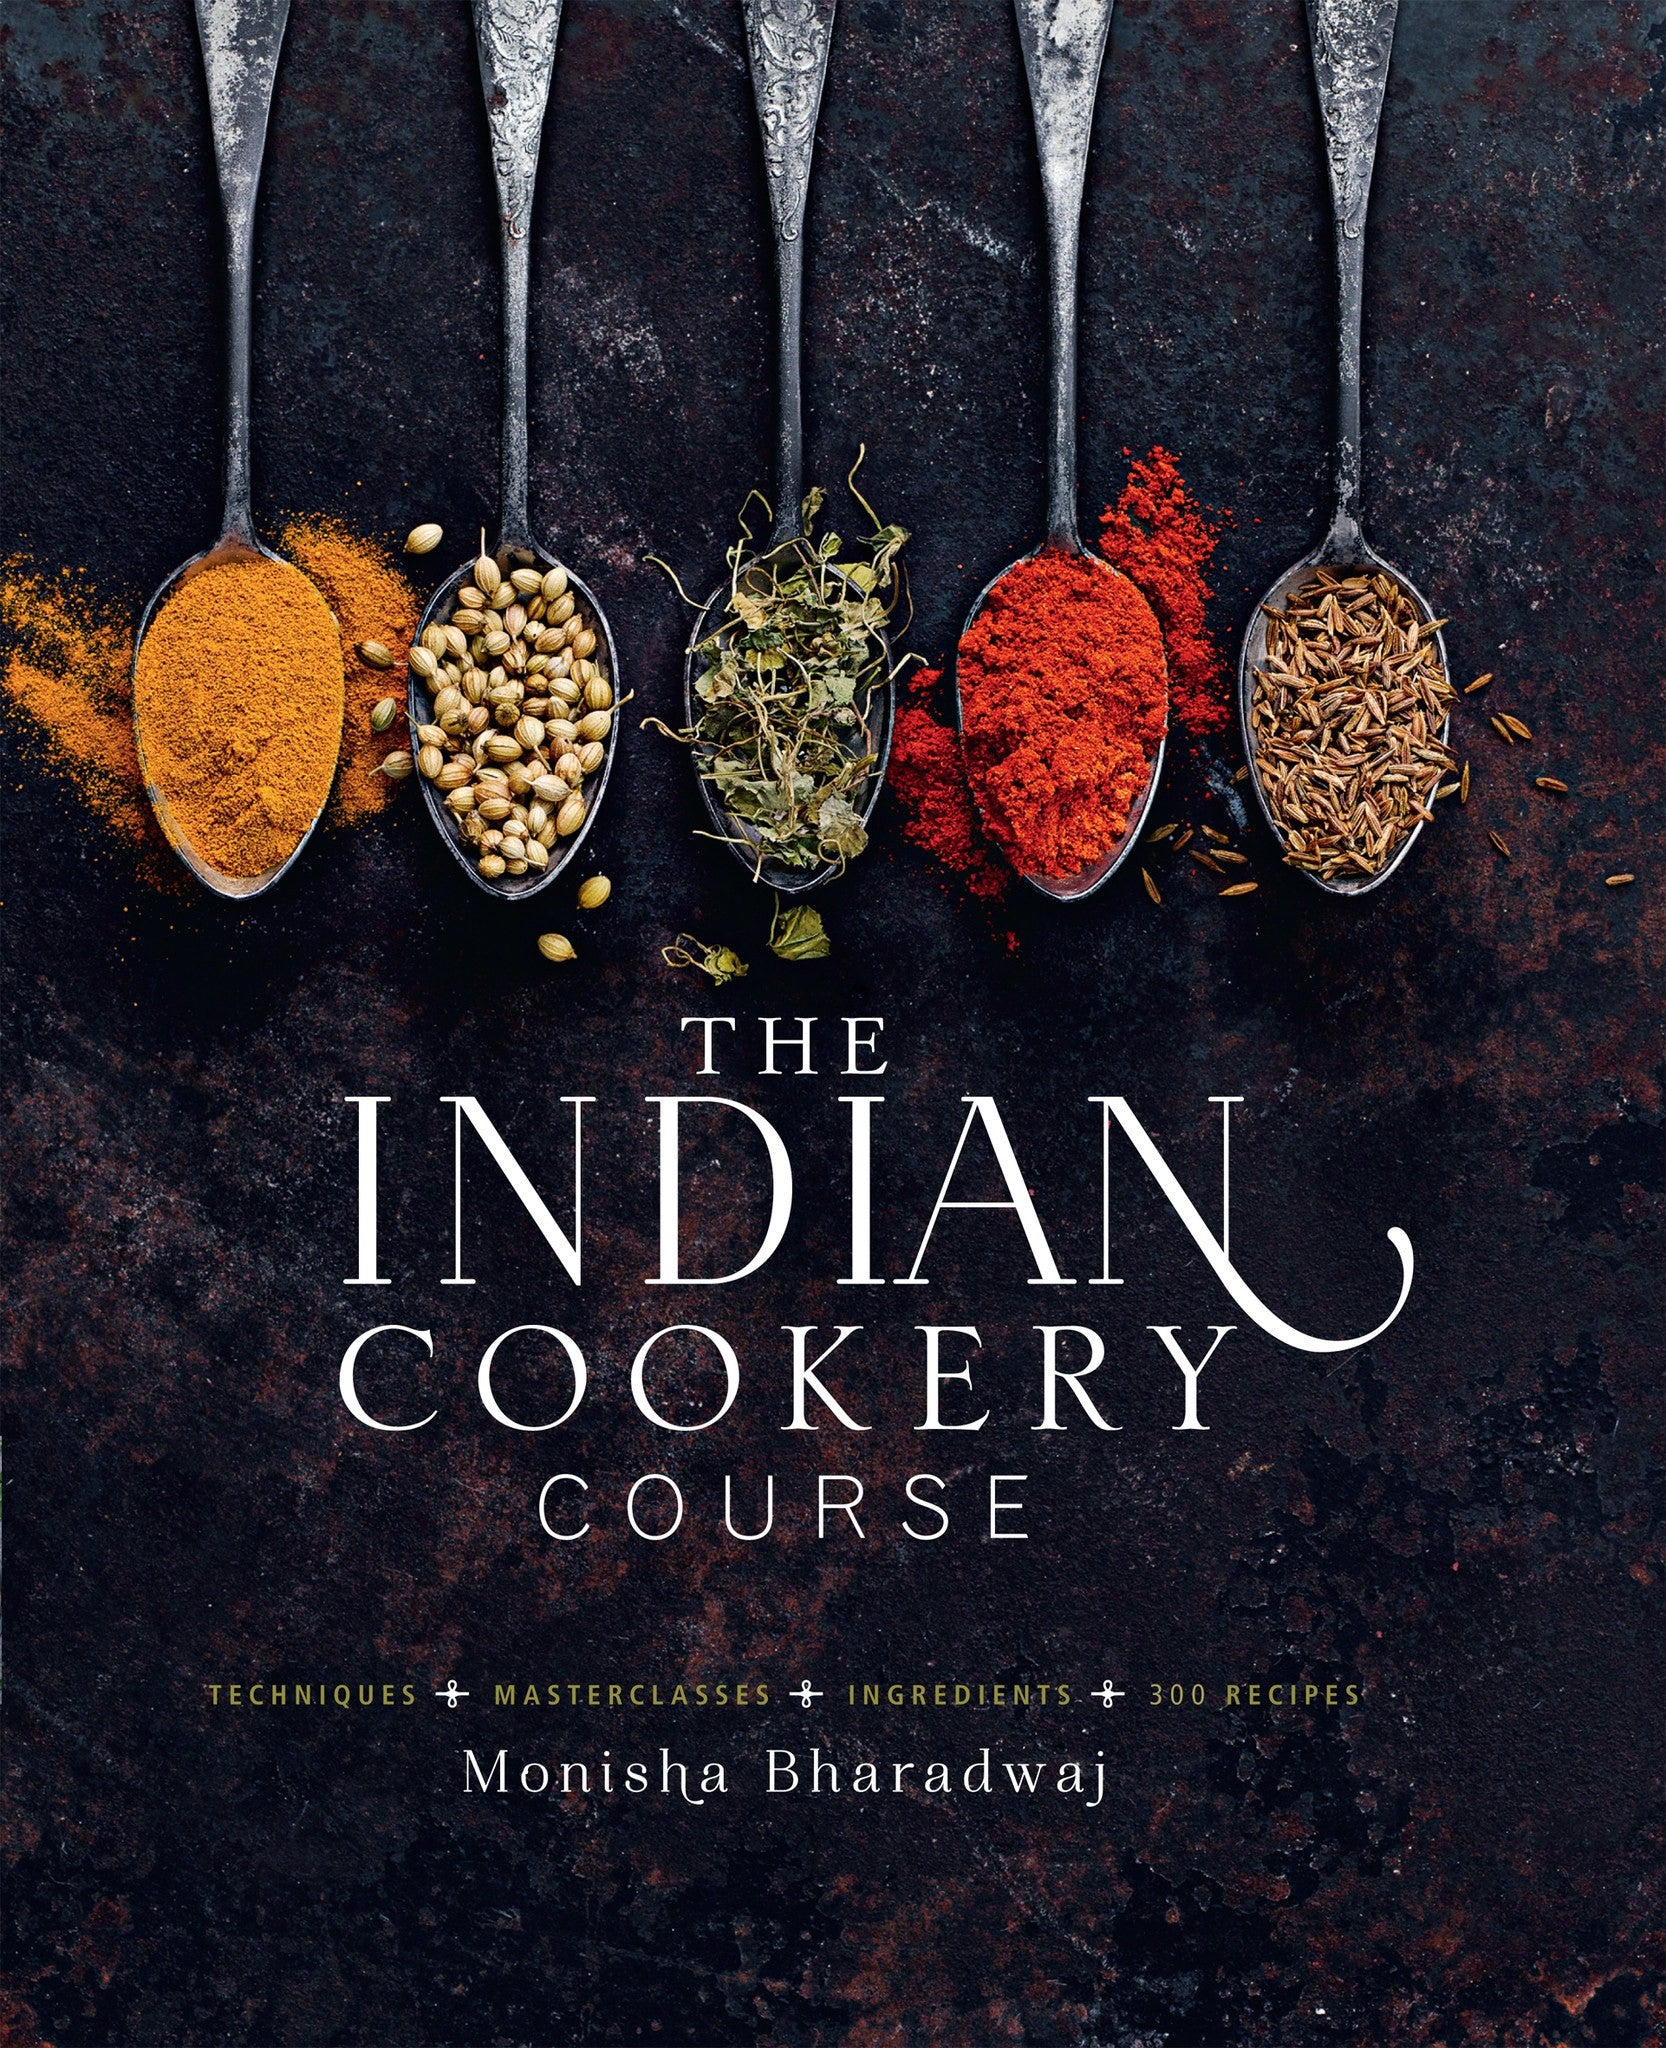 Monisha Bharadwaj 'The Indian Cookery Course ' Signed Copy & Spice Tin, 9 Spices & Handmade Silk Sari Wrap - Spice Kitchen - Spices, Spice Blends, Gifts & Cookware